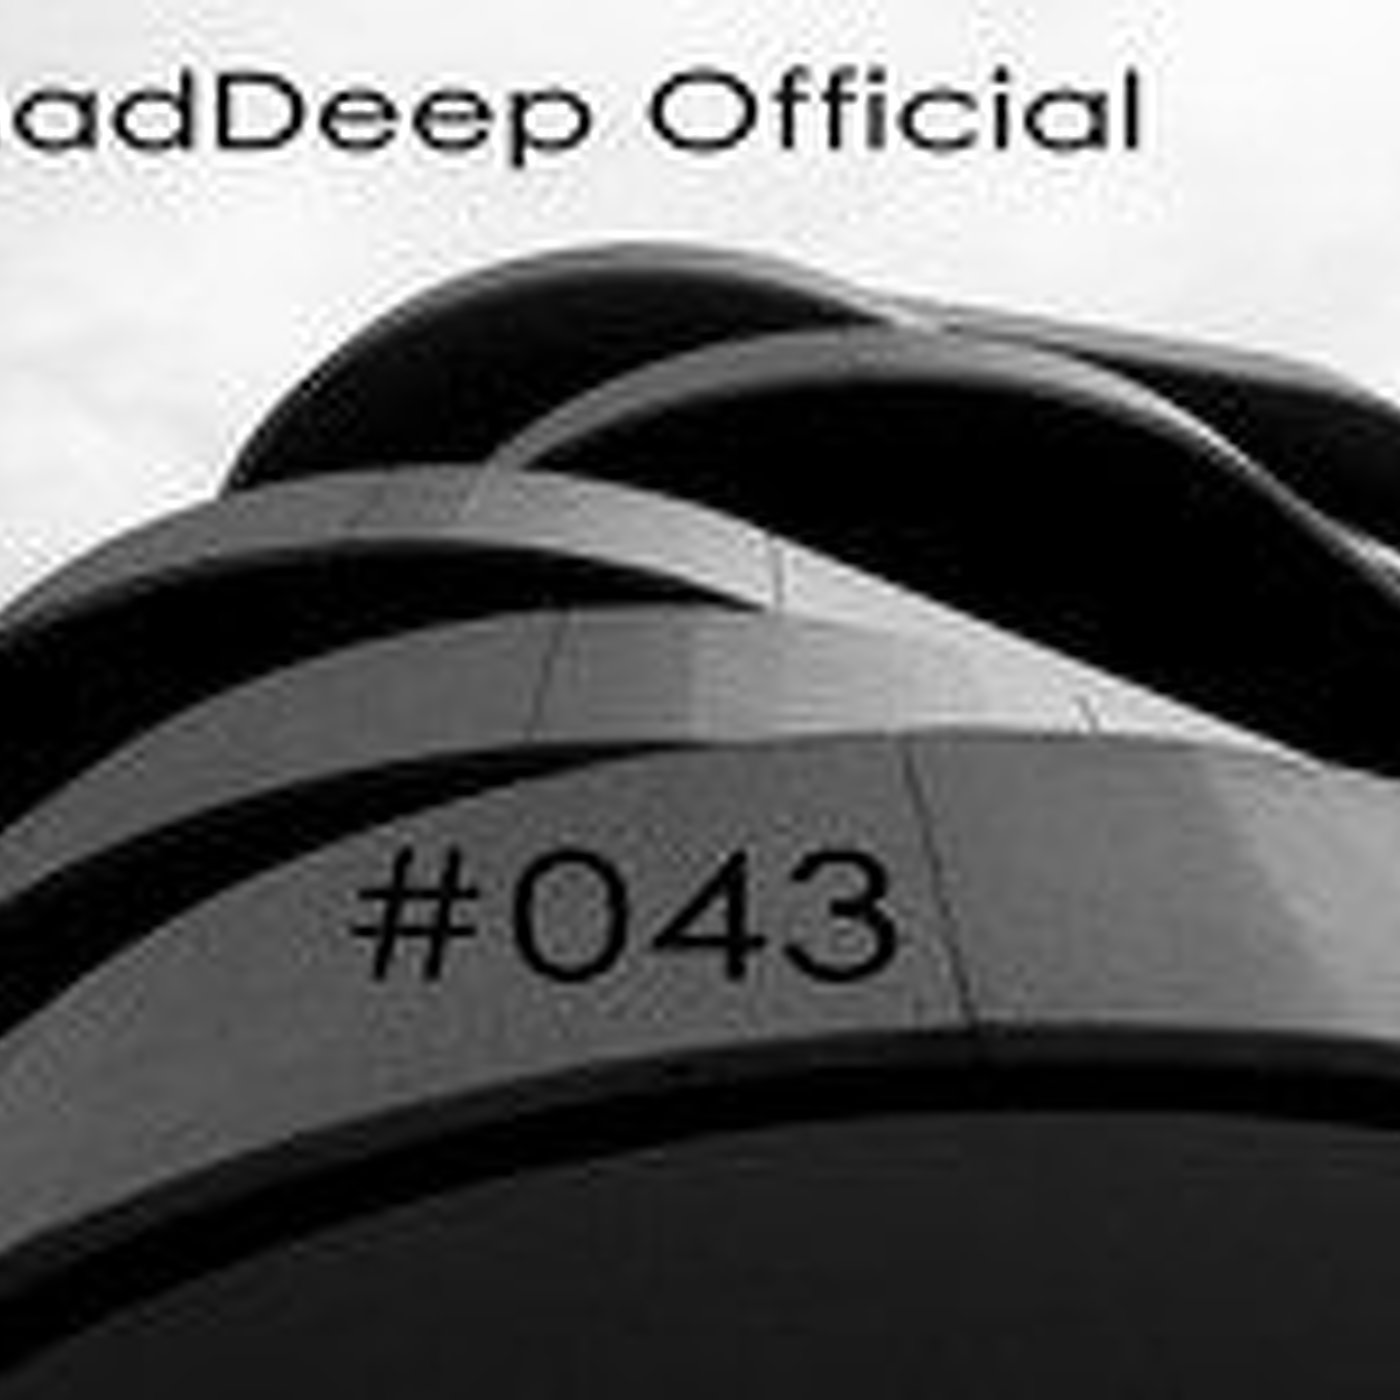 Best deep house vocal february 2015 043 en maddeep en mp3 for Best vocal house songs ever